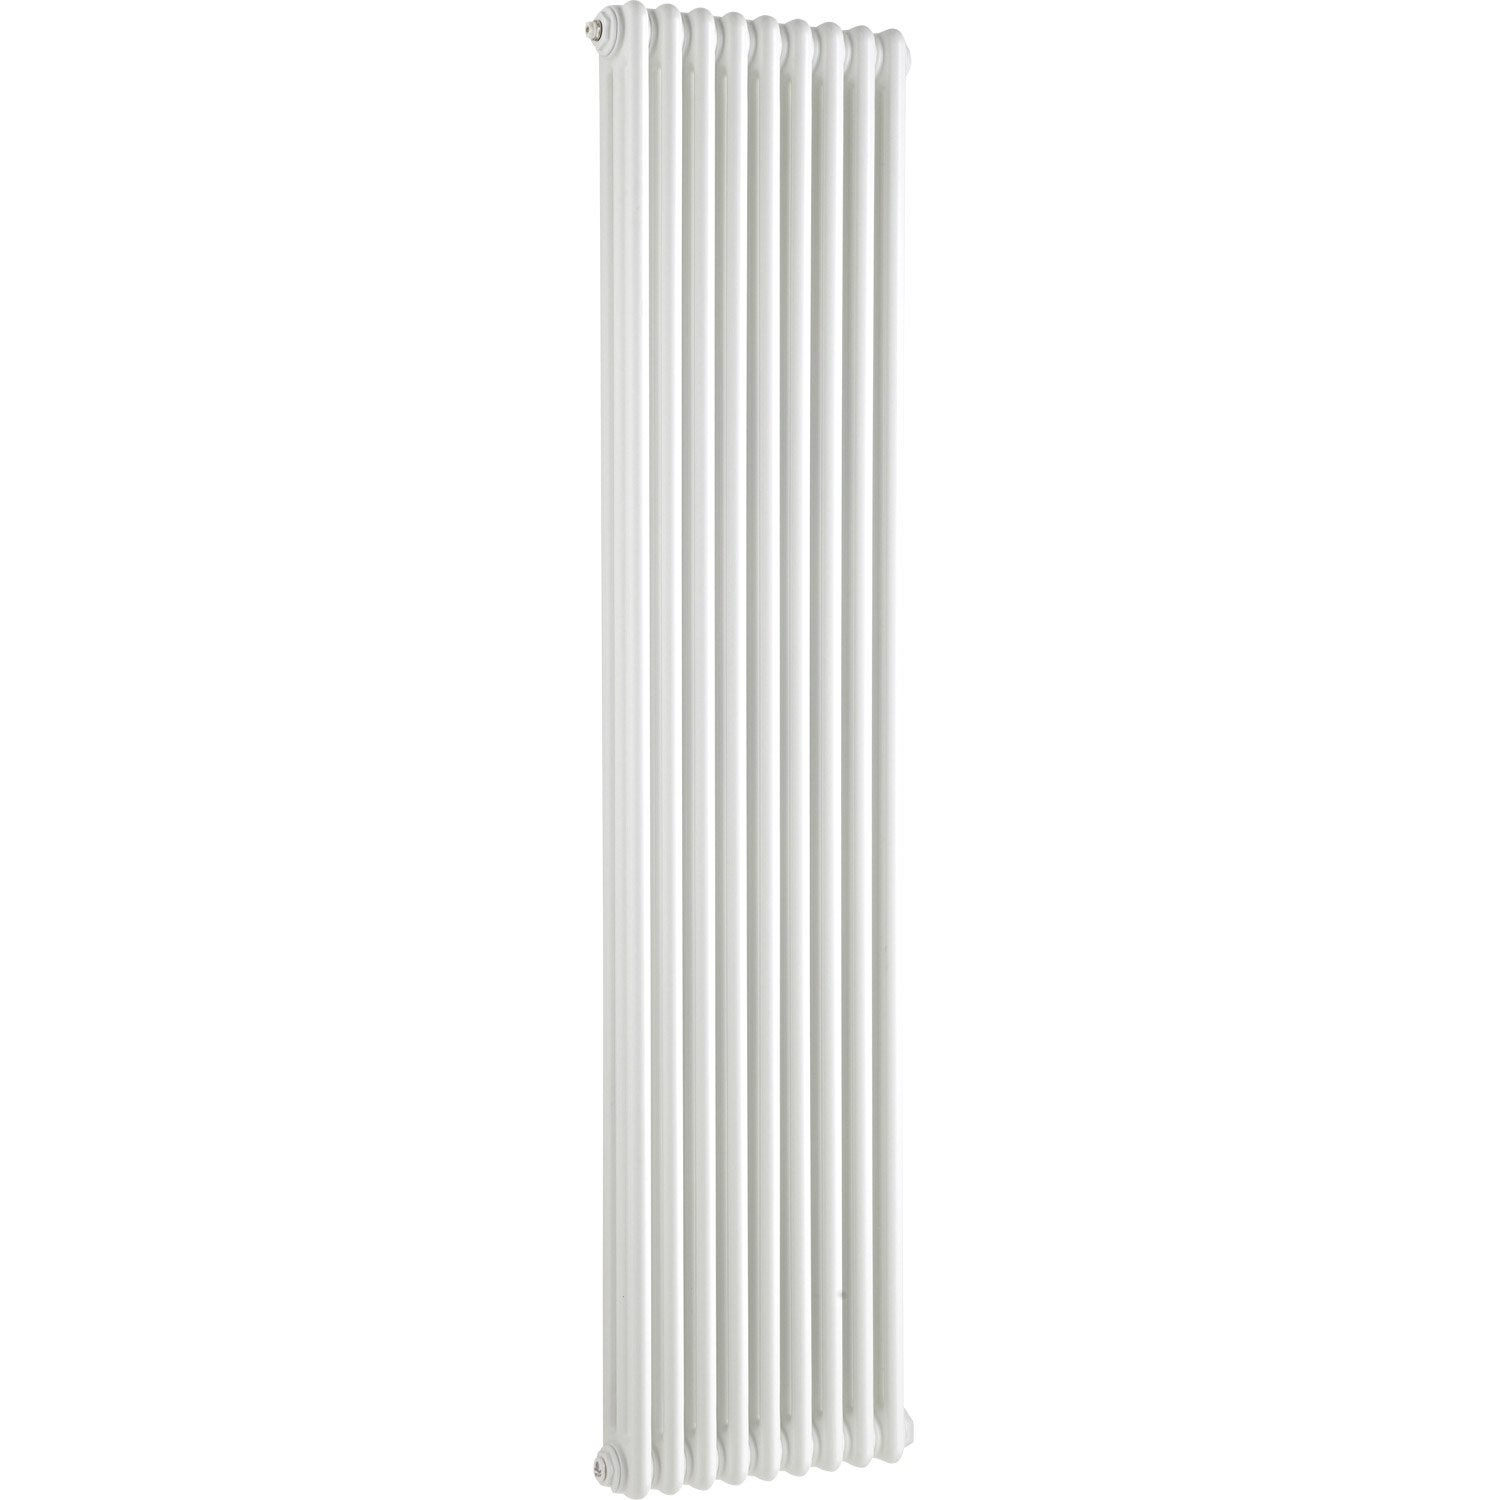 radiateur chauffage central tesi blanc cm 1520 w leroy merlin. Black Bedroom Furniture Sets. Home Design Ideas